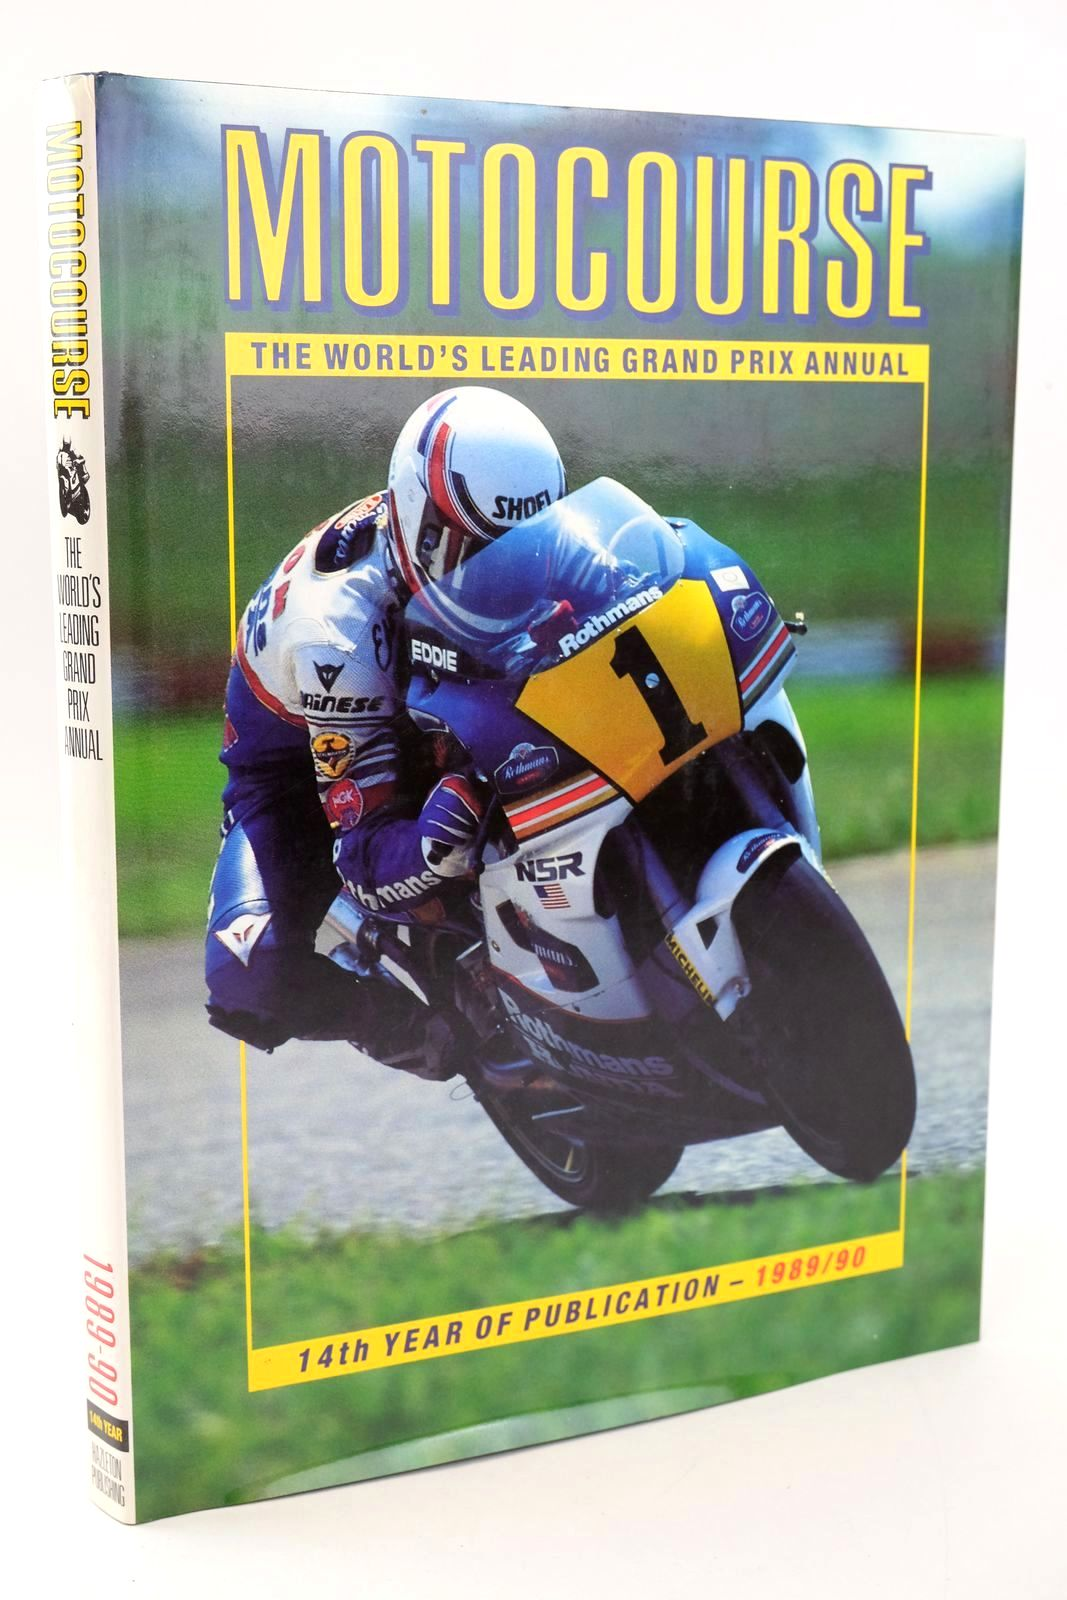 Photo of MOTOCOURSE 1989-90 written by Clifford, Peter published by Hazleton Publishing (STOCK CODE: 1319320)  for sale by Stella & Rose's Books